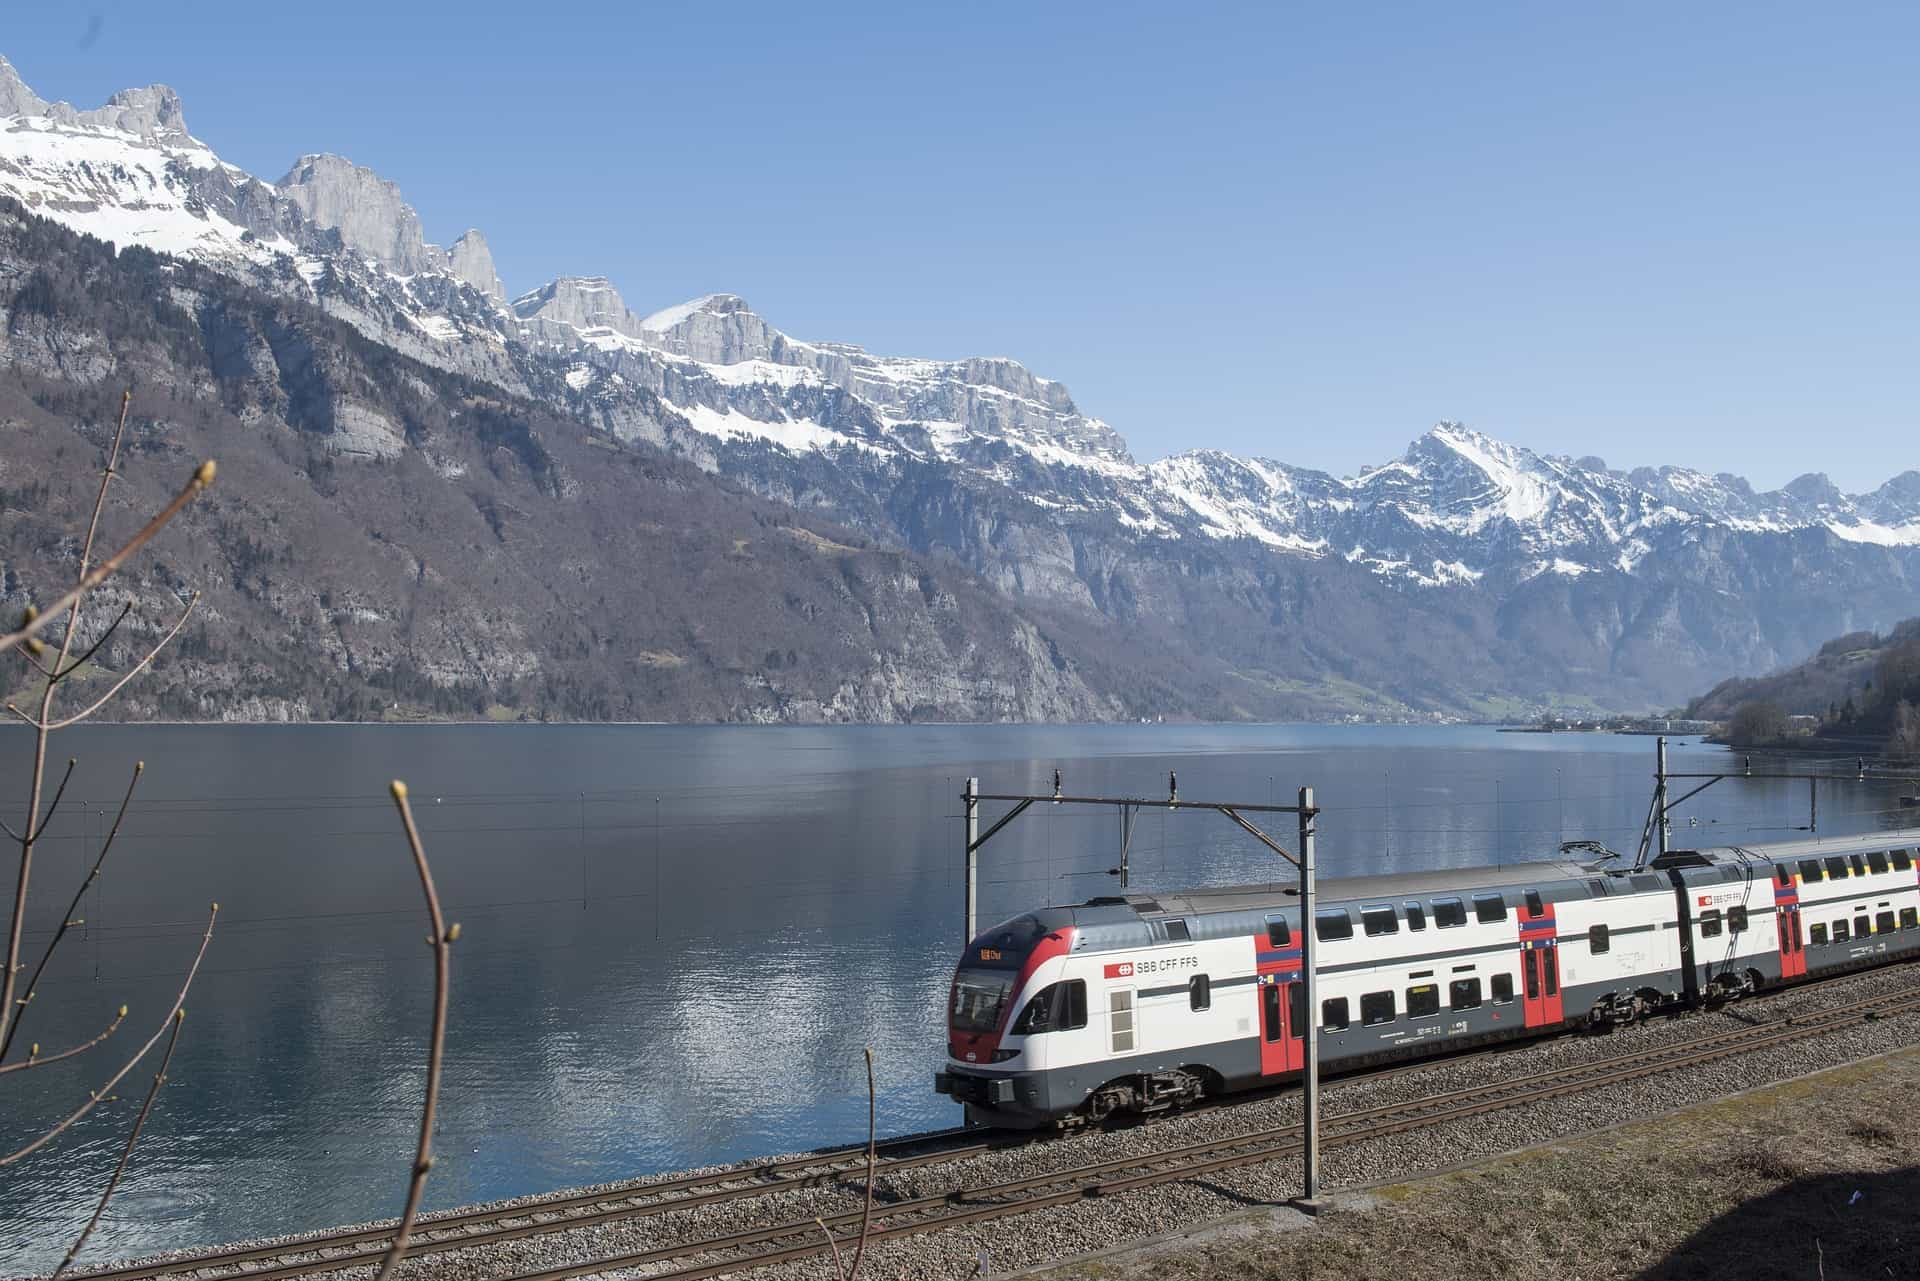 Train next to moutains in Switzerland